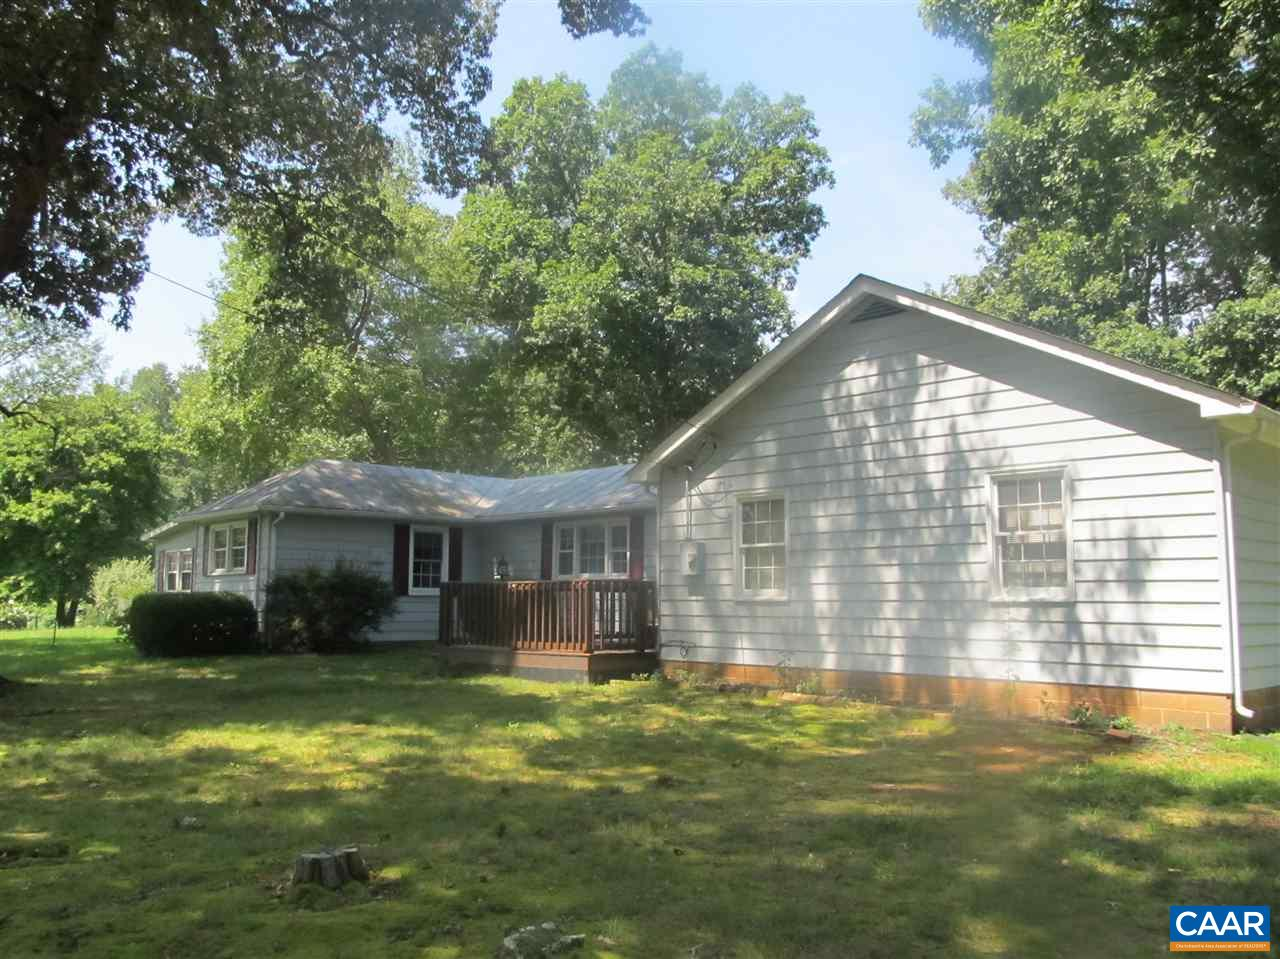 home for sale , MLS #580521, 17865 James Madison Hwy